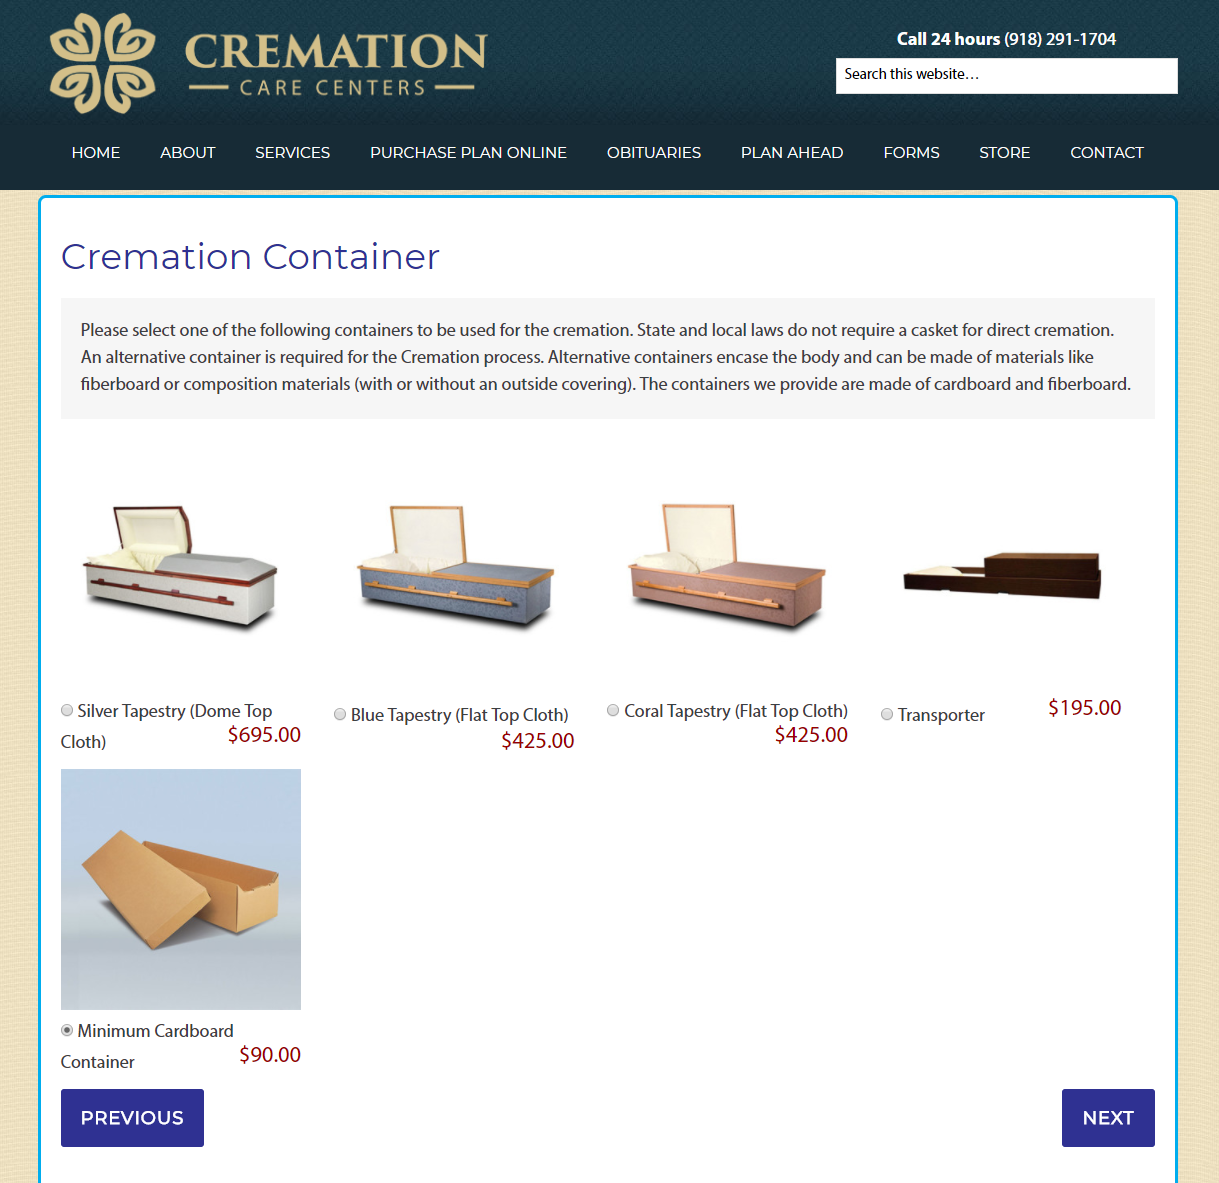 3_cremation-container